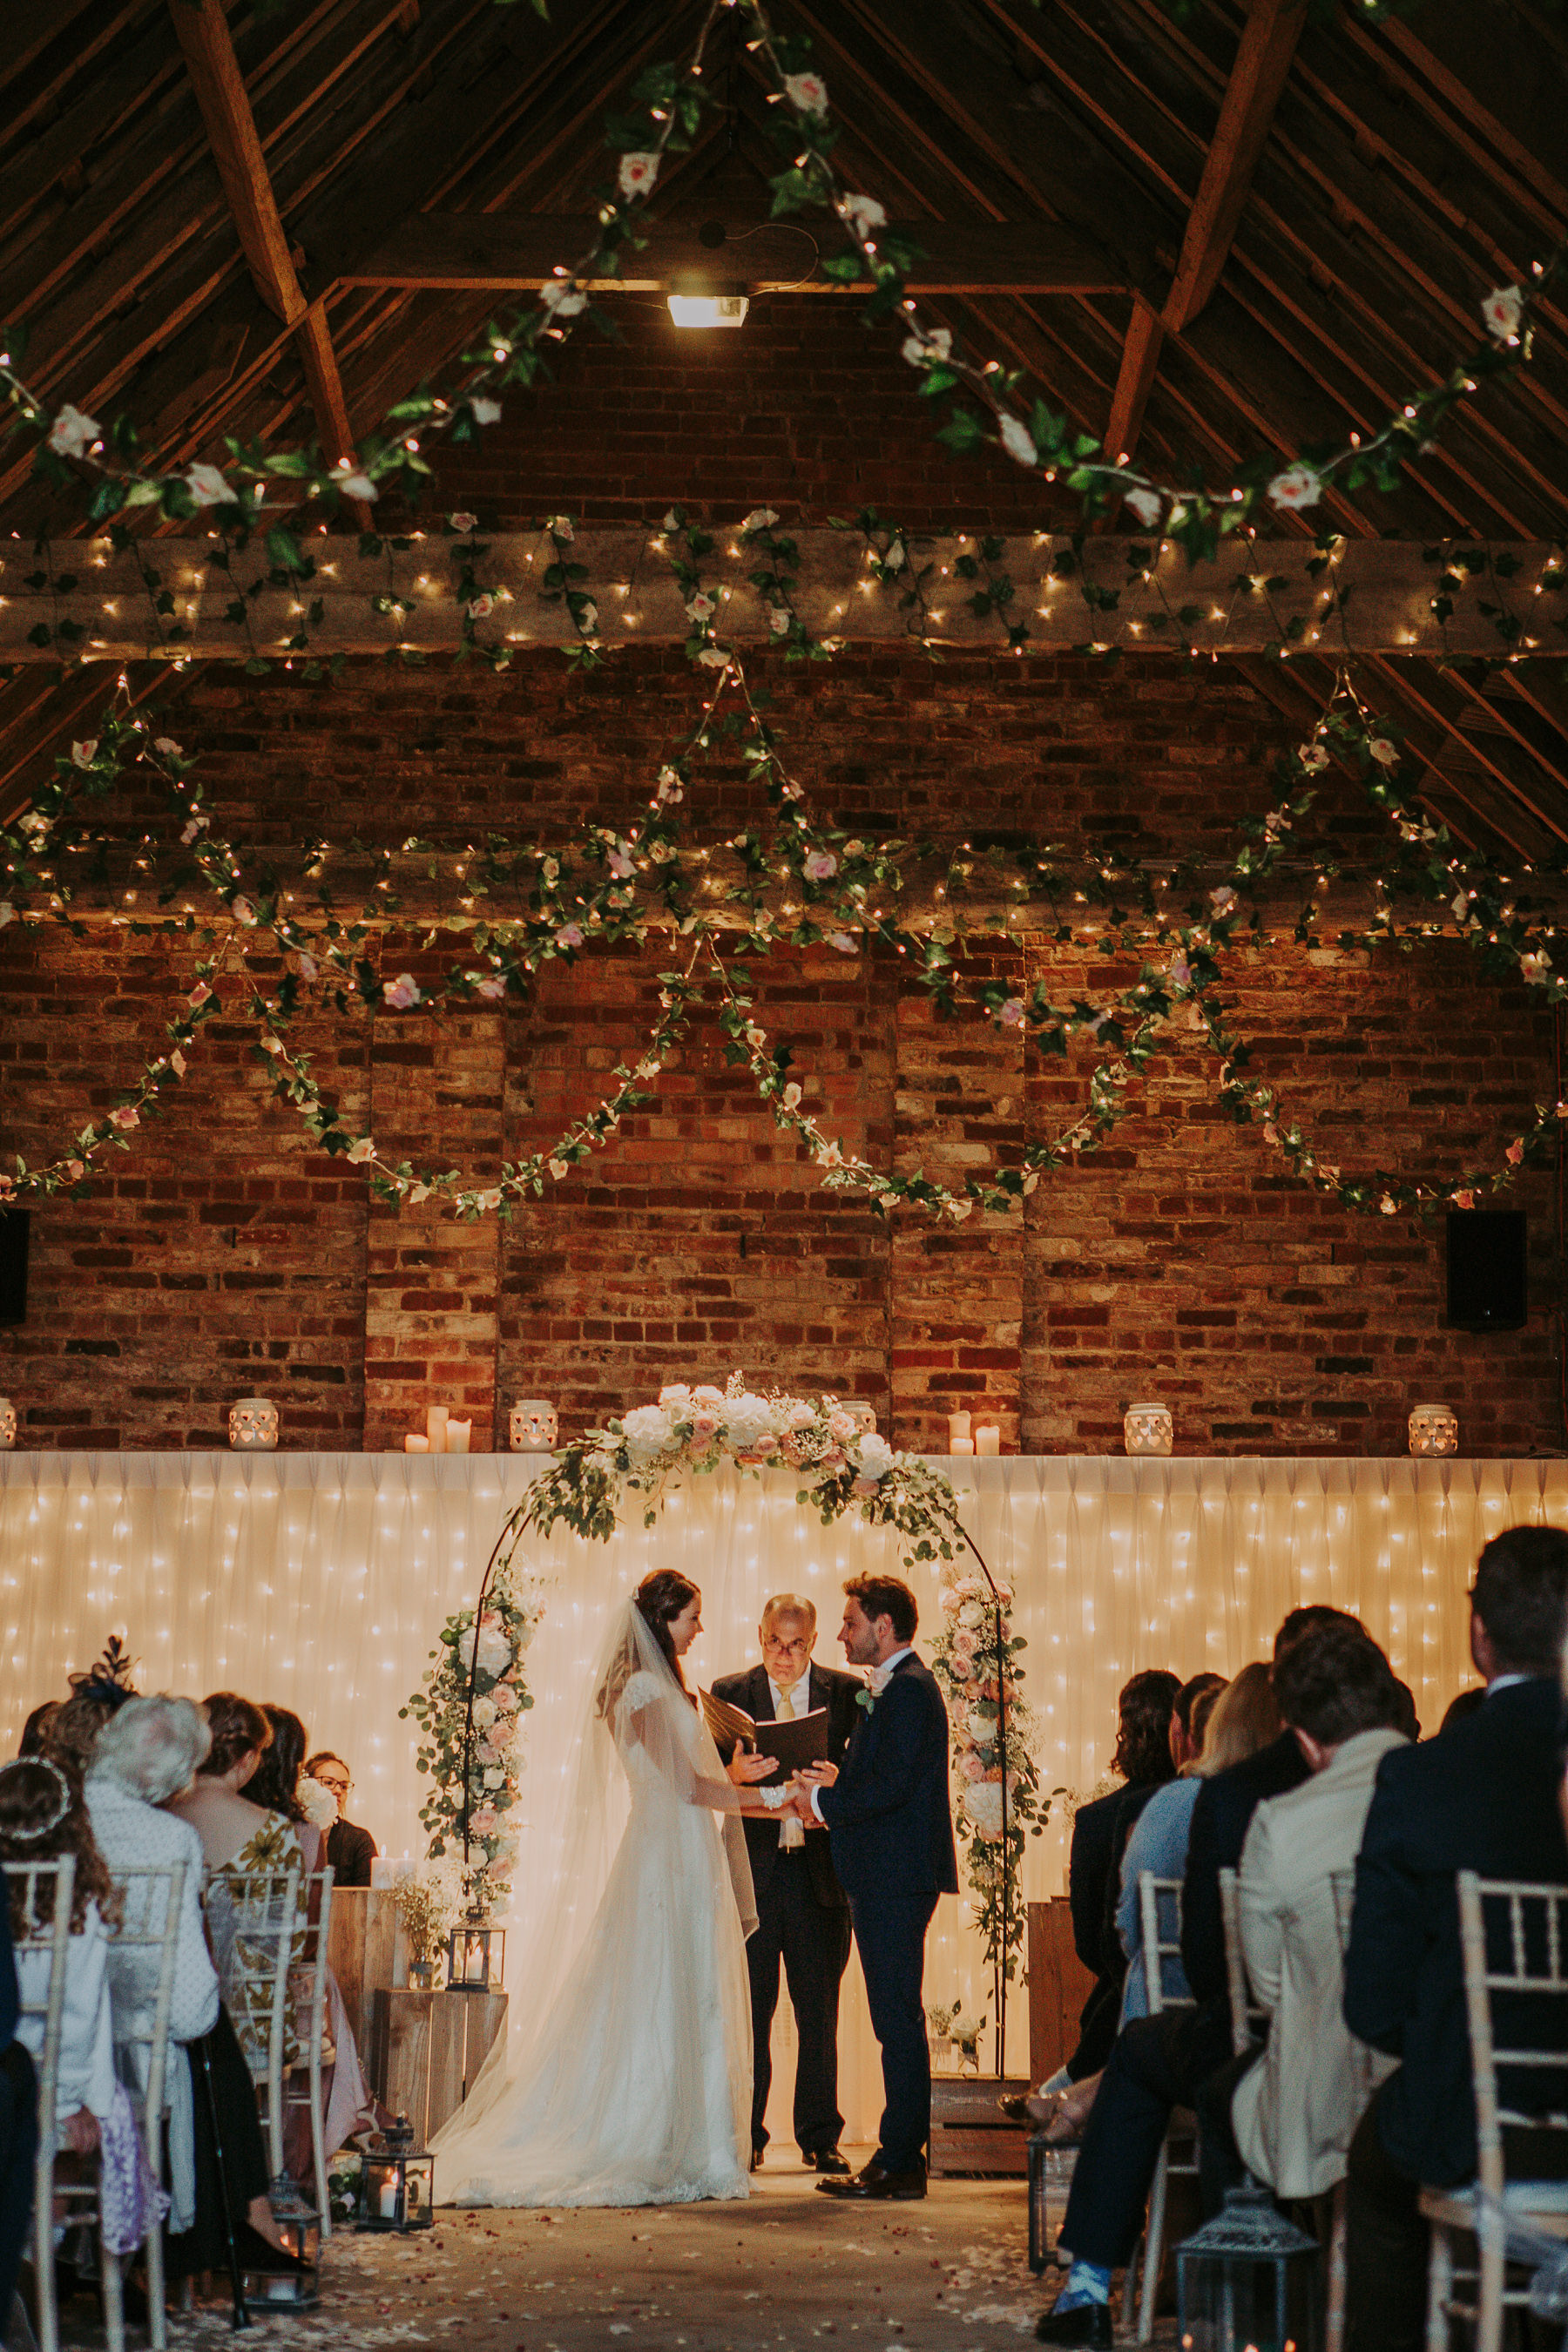 Barmbyfield barn wedding